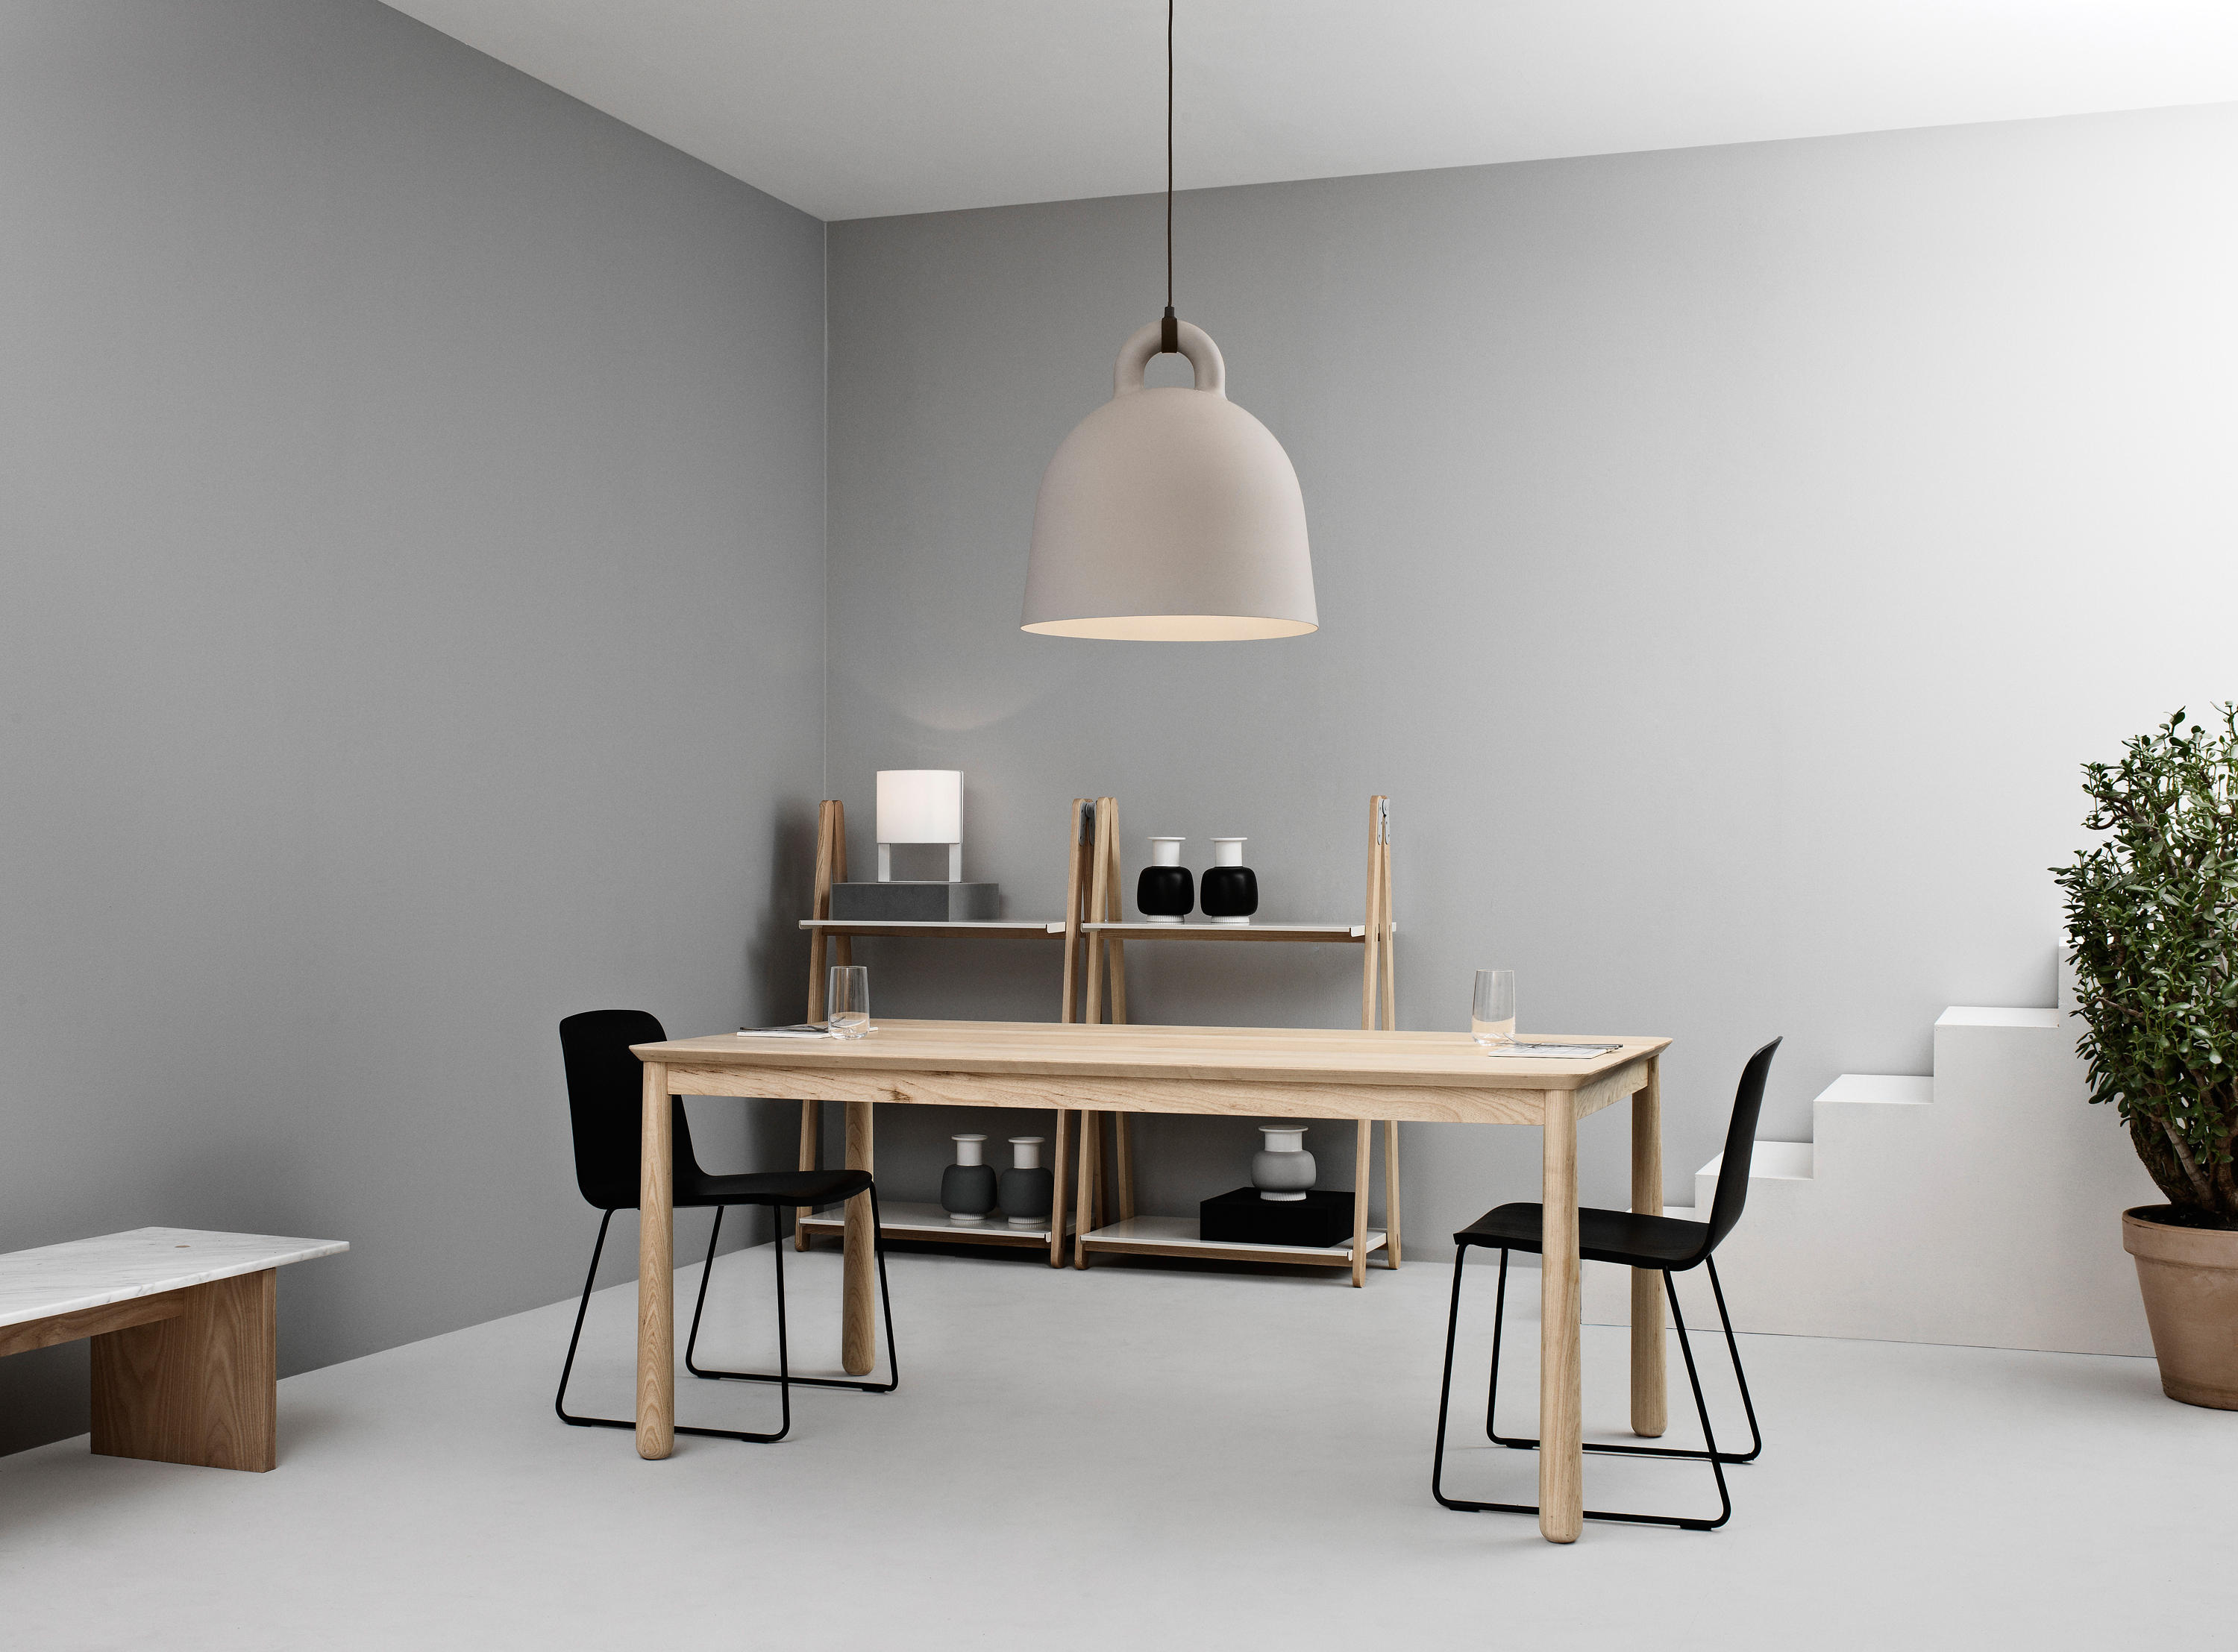 SOLID TABLE Dining tables from Normann Copenhagen